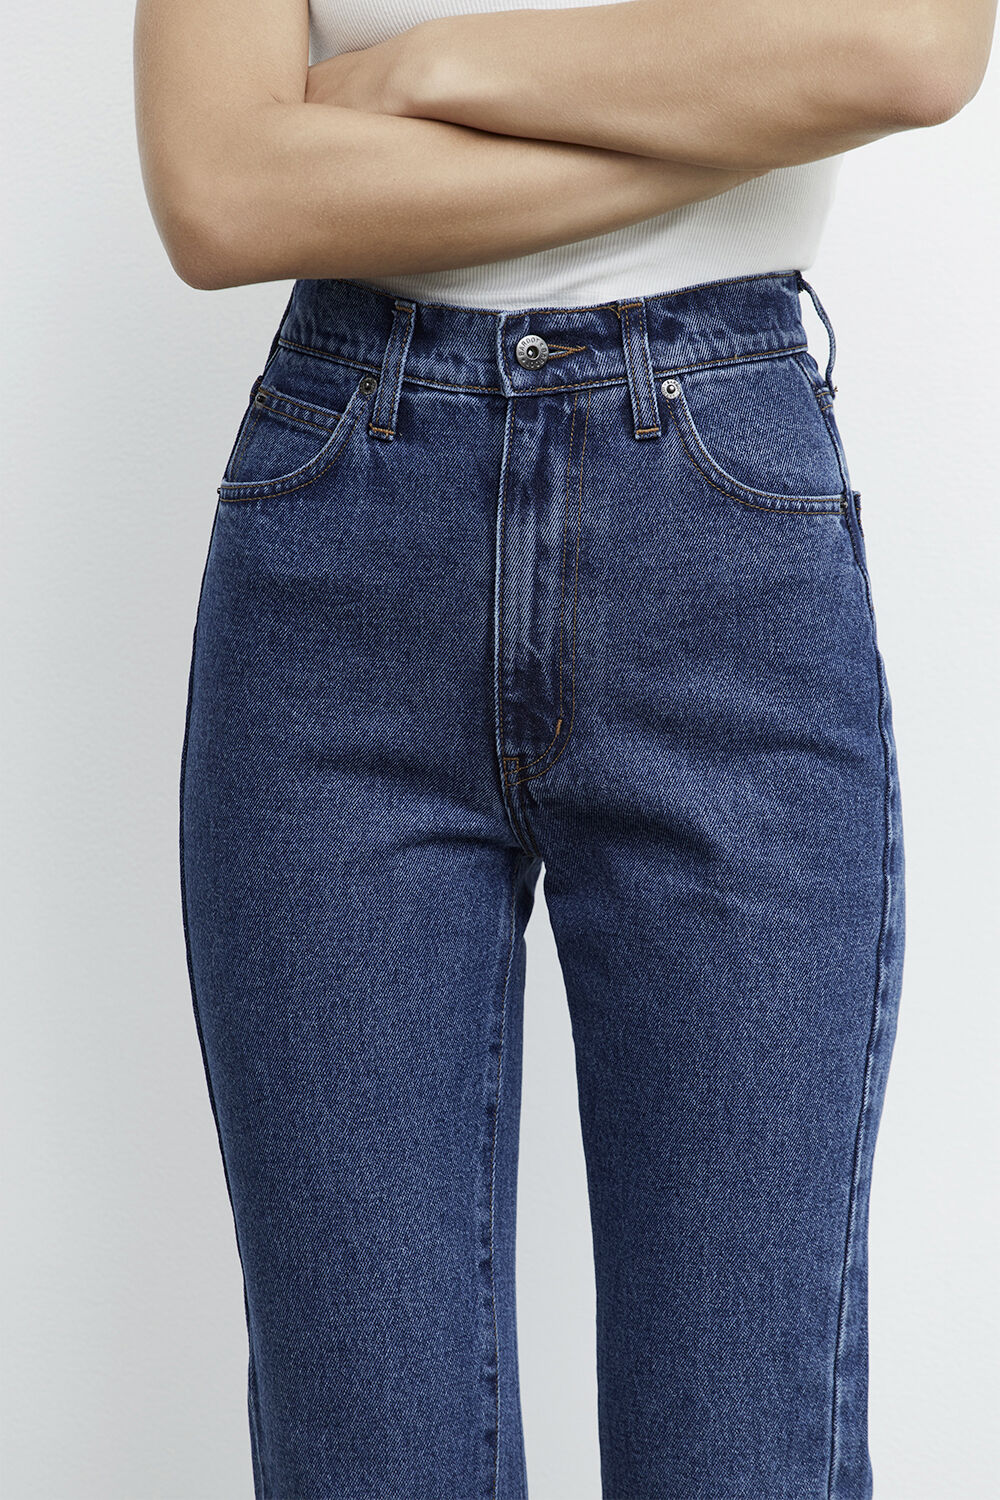 GISELE STRAIGHT FULL LEG JEAN in colour TRUE NAVY